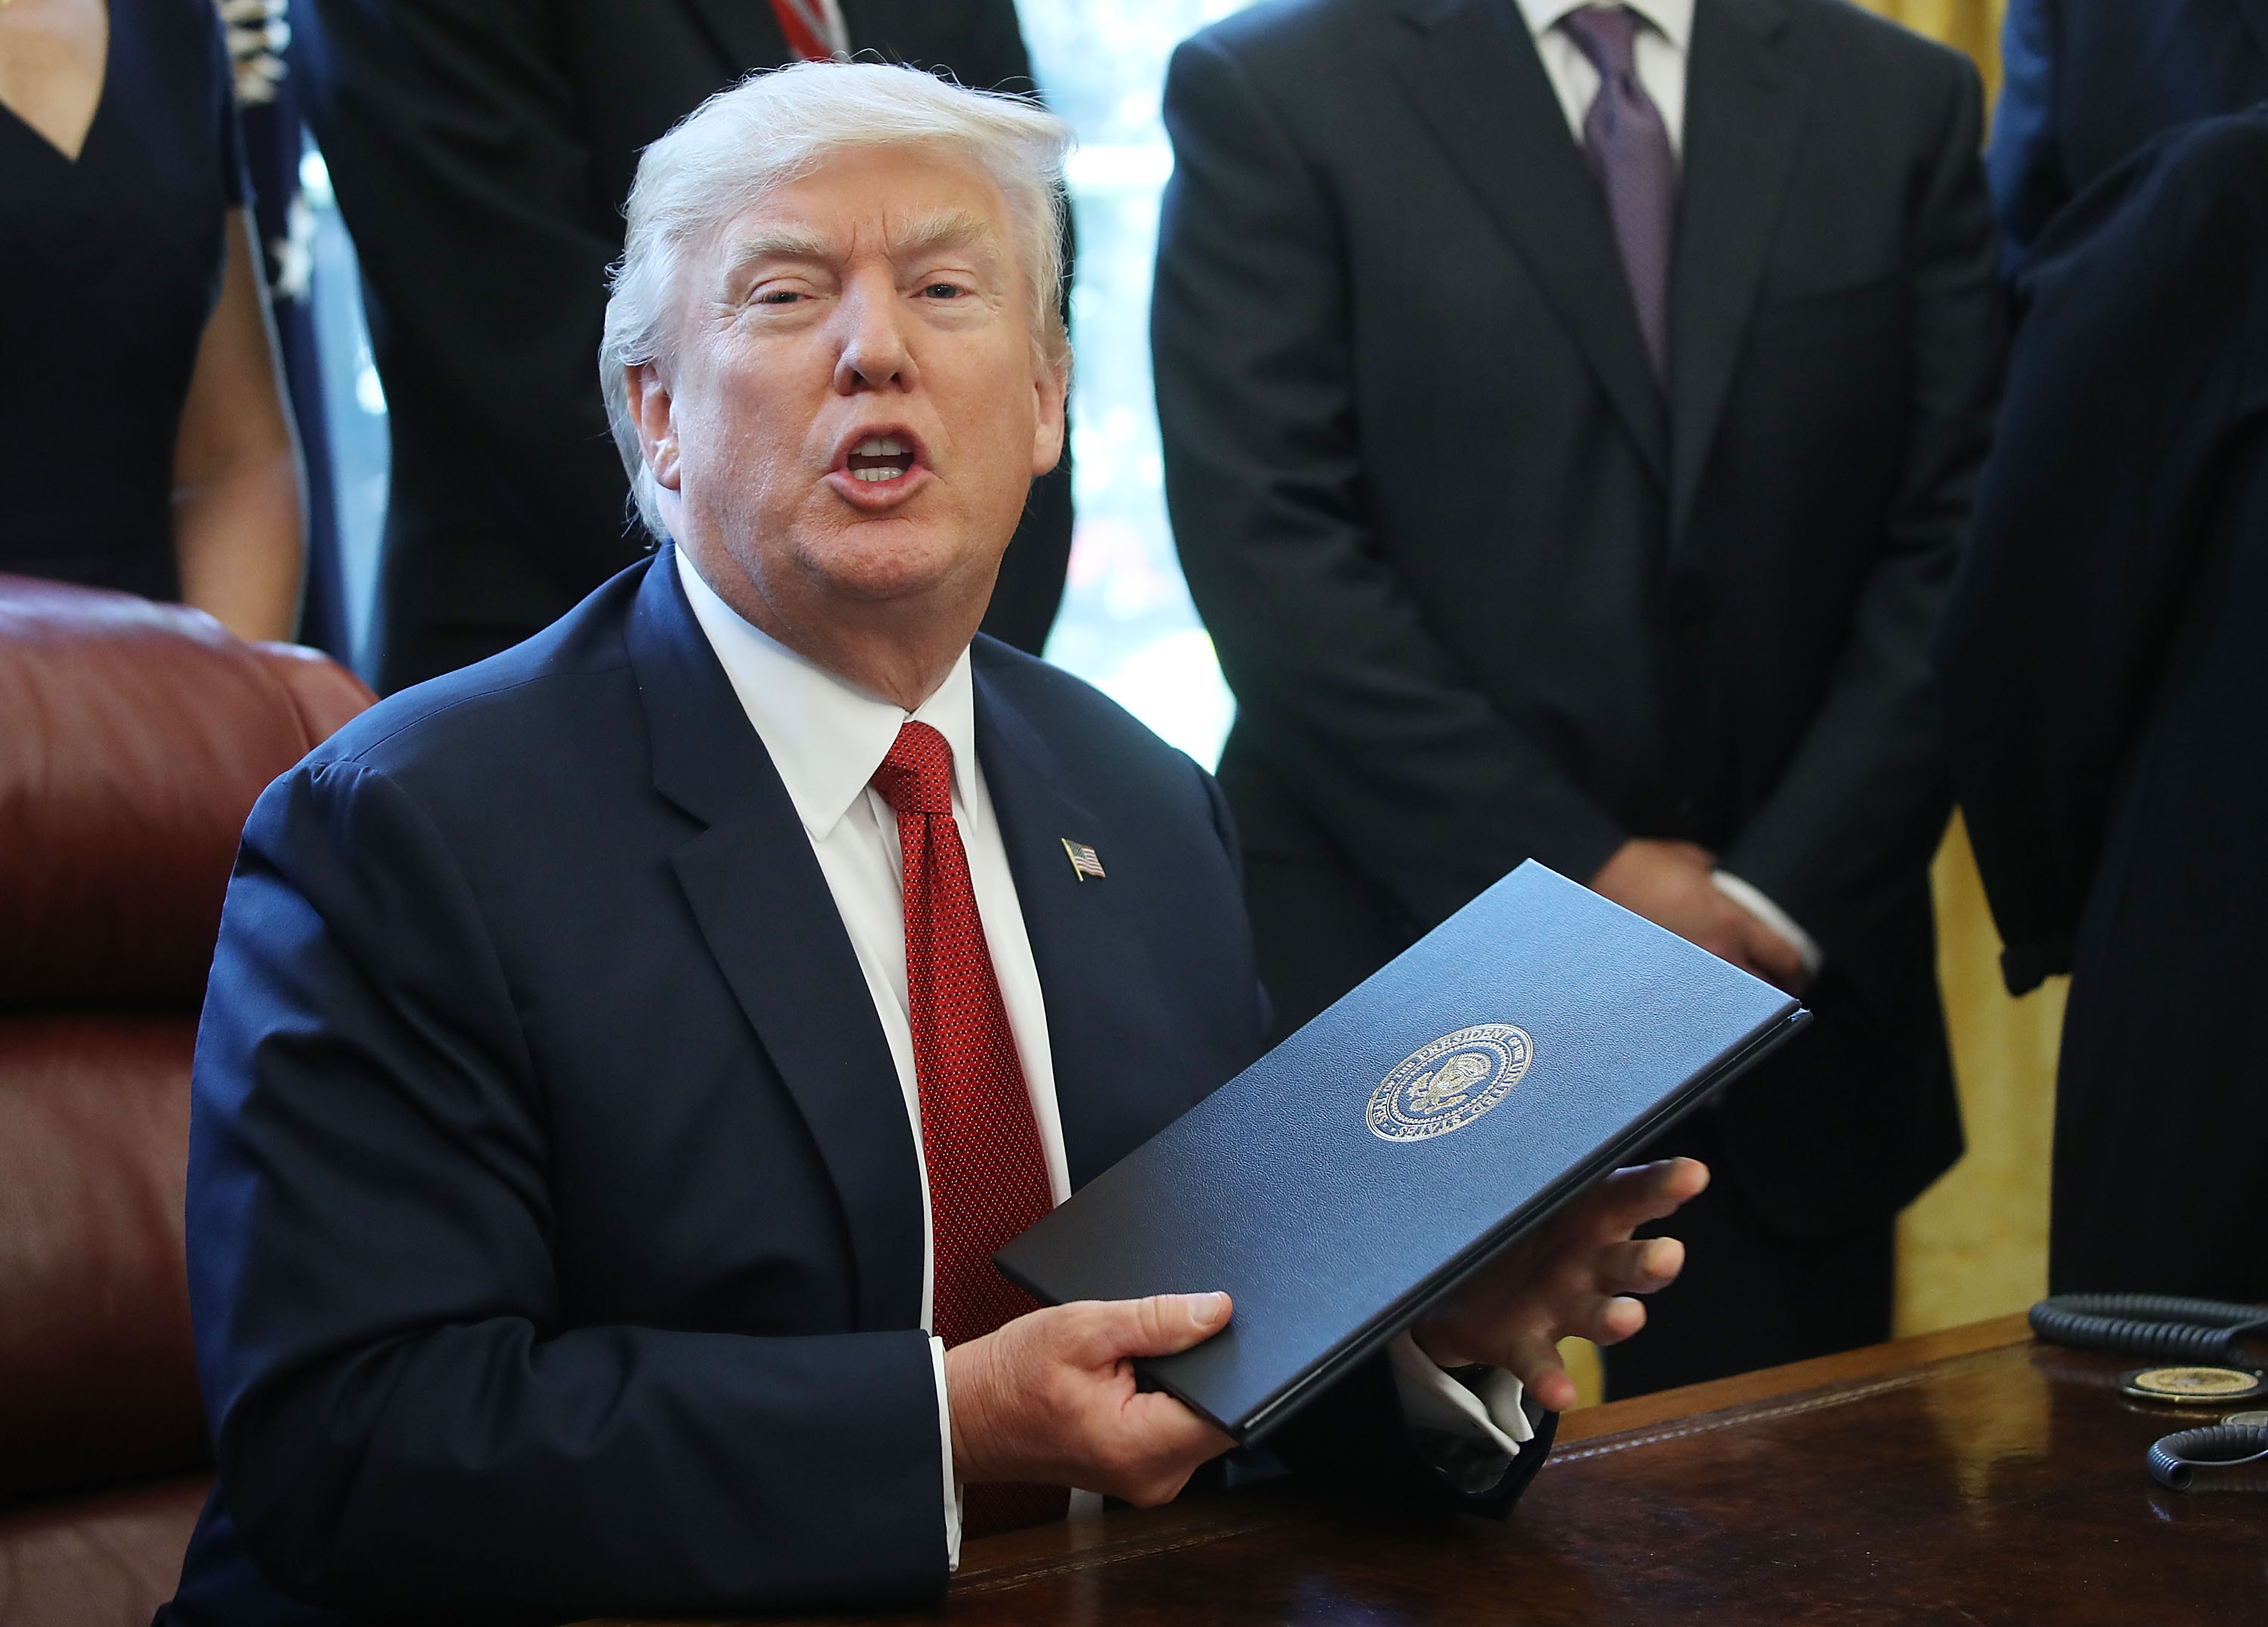 U.S. President Donald Trump holds up an Executive Memorandum on the investigation of steel imports, after signing it in the Oval Office at the White House, on April 20, 2017 in Washington, DC.